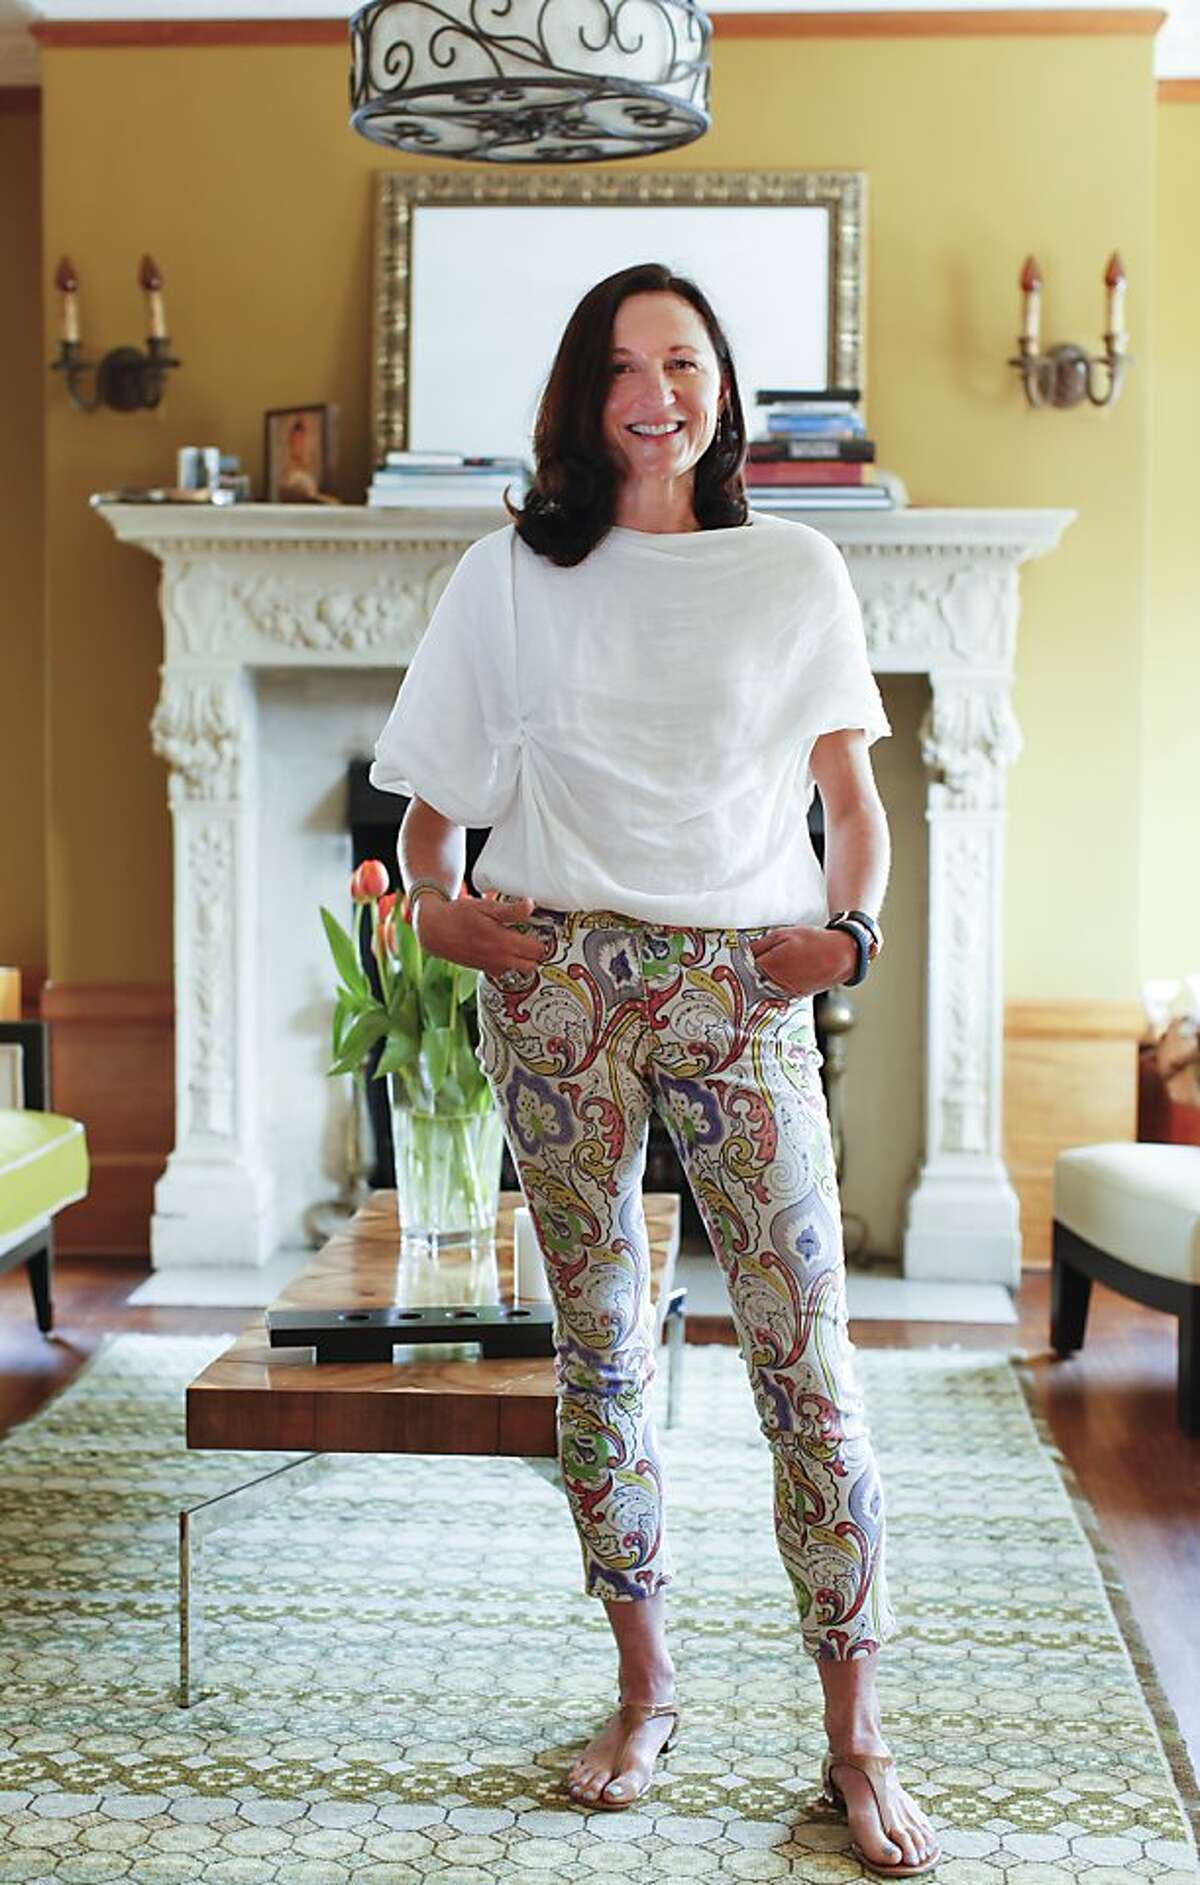 Margit Wennmachers, a venture capitalist at Andreessen Horowitz, is seen in her San Francisco, Calif., home on Wednesday, July 3, 2013.